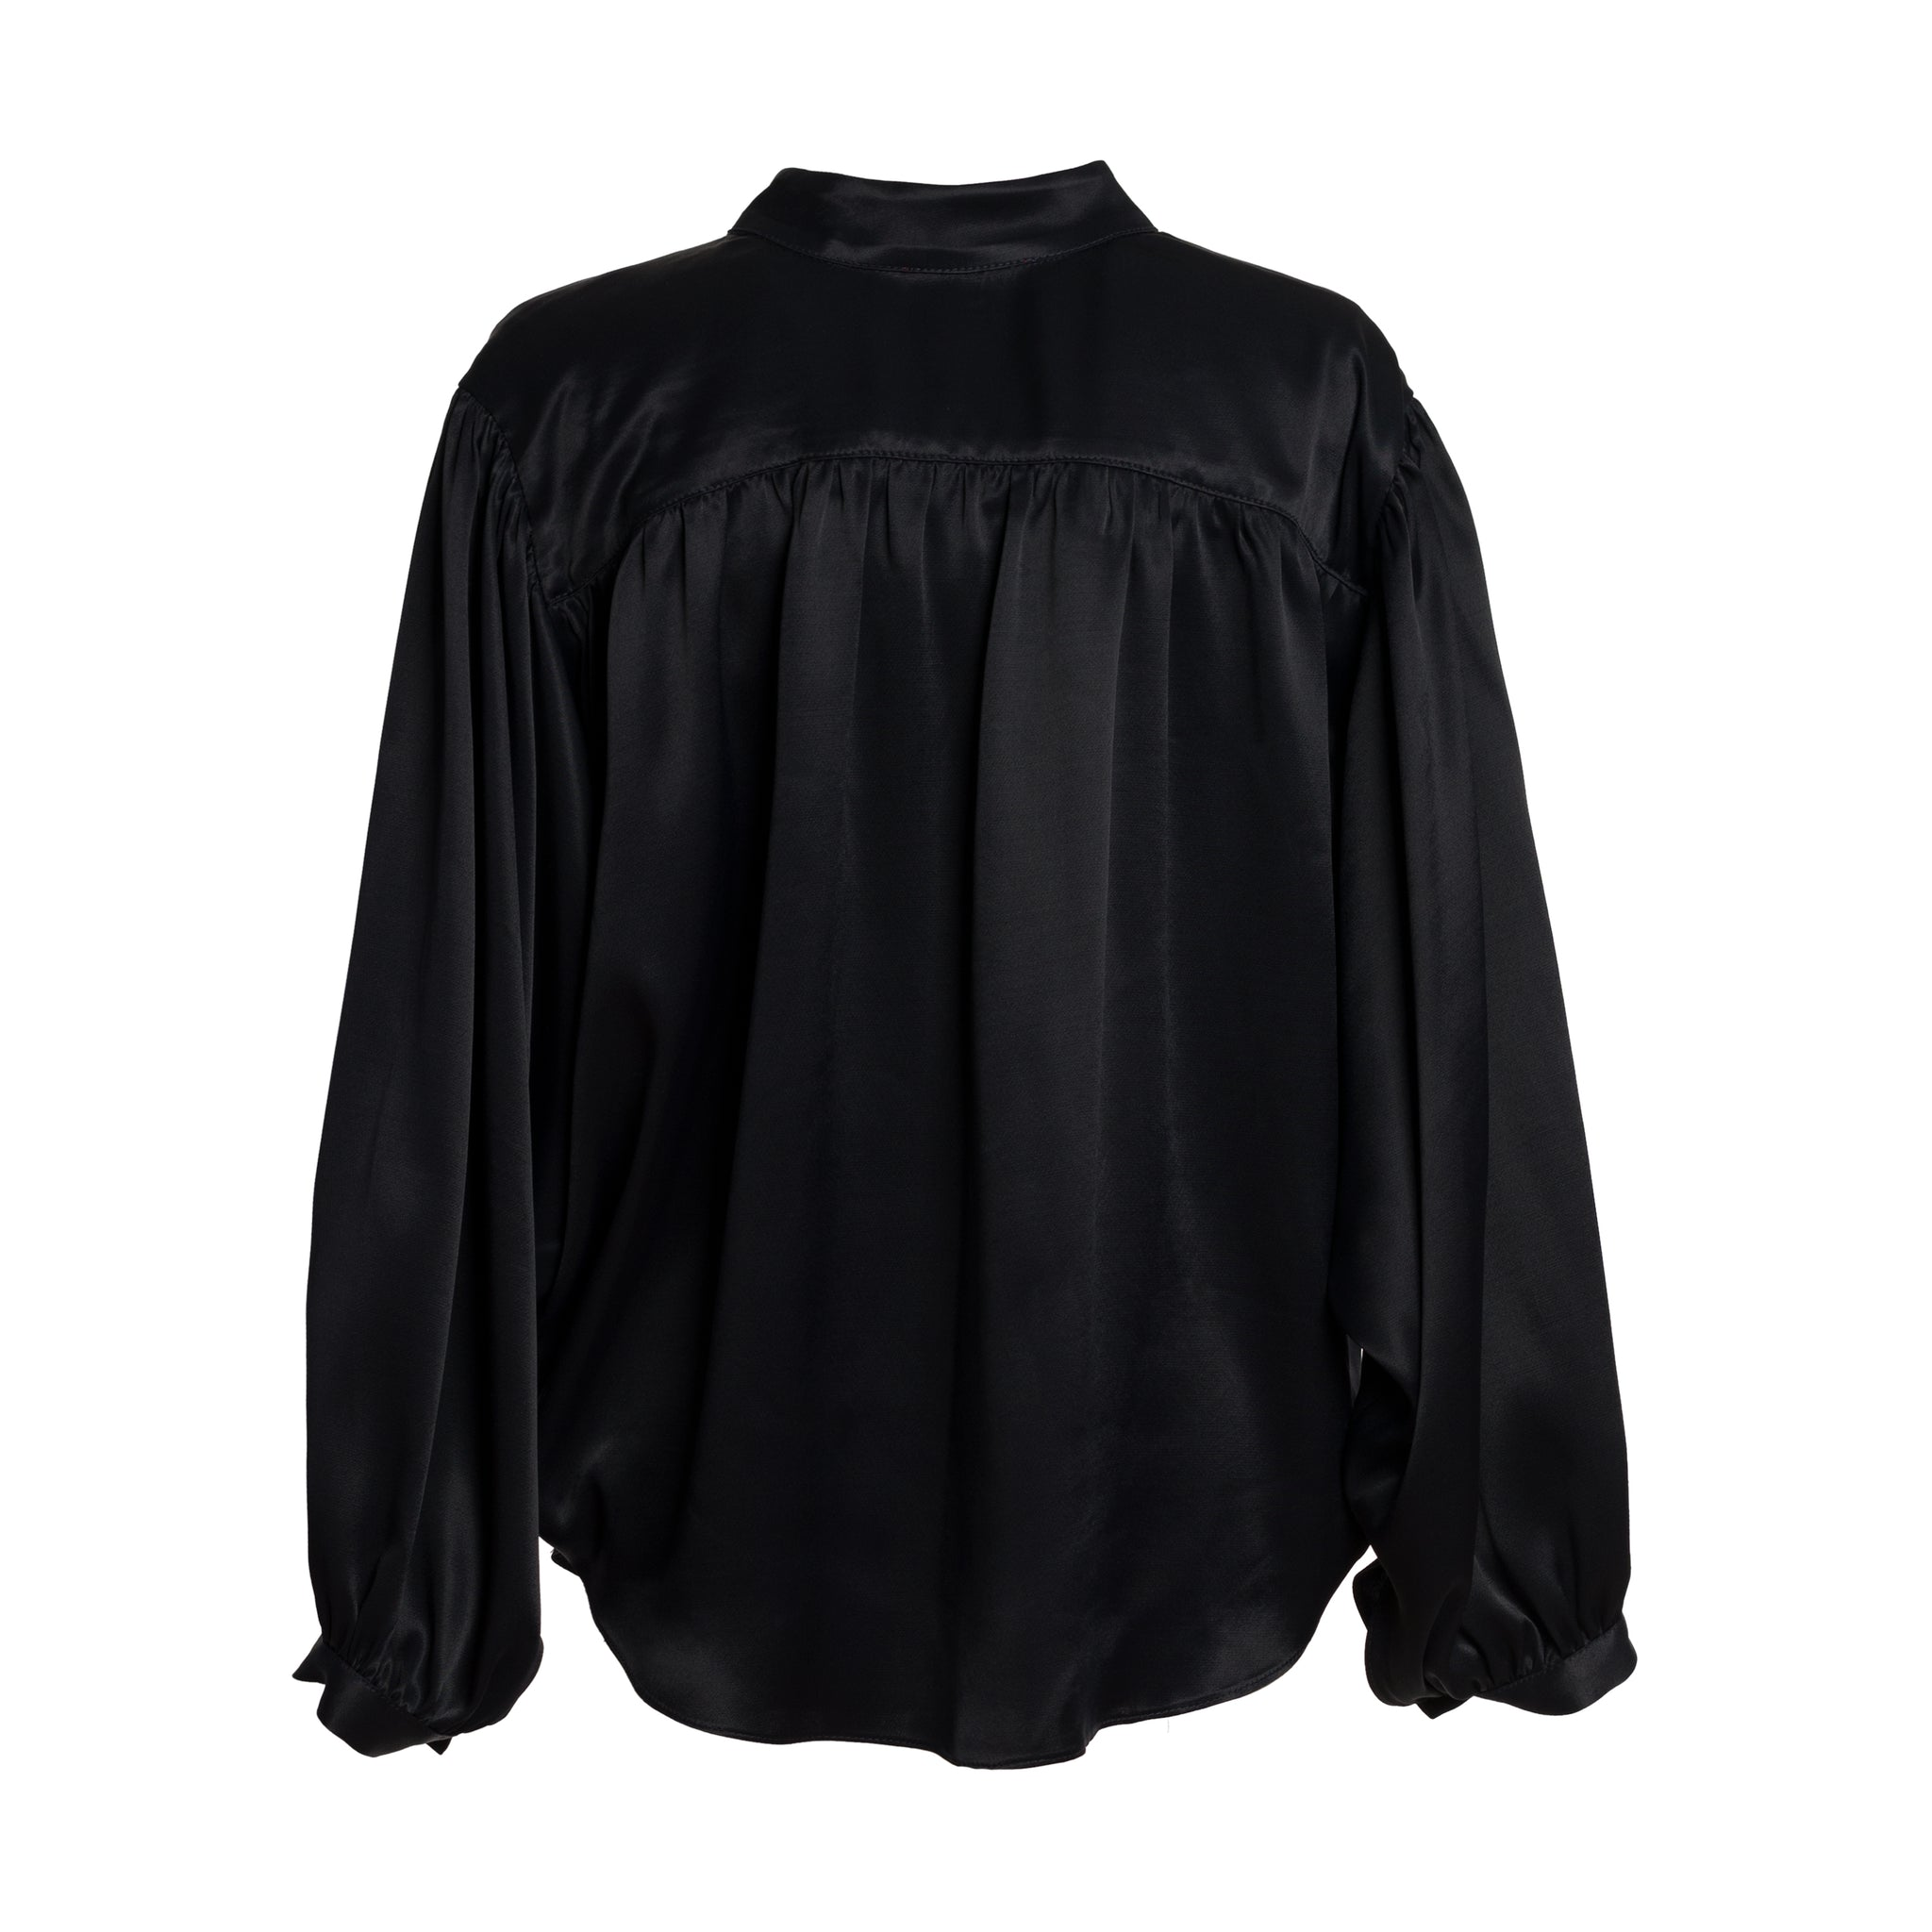 KOKI Black Gathered Shirt